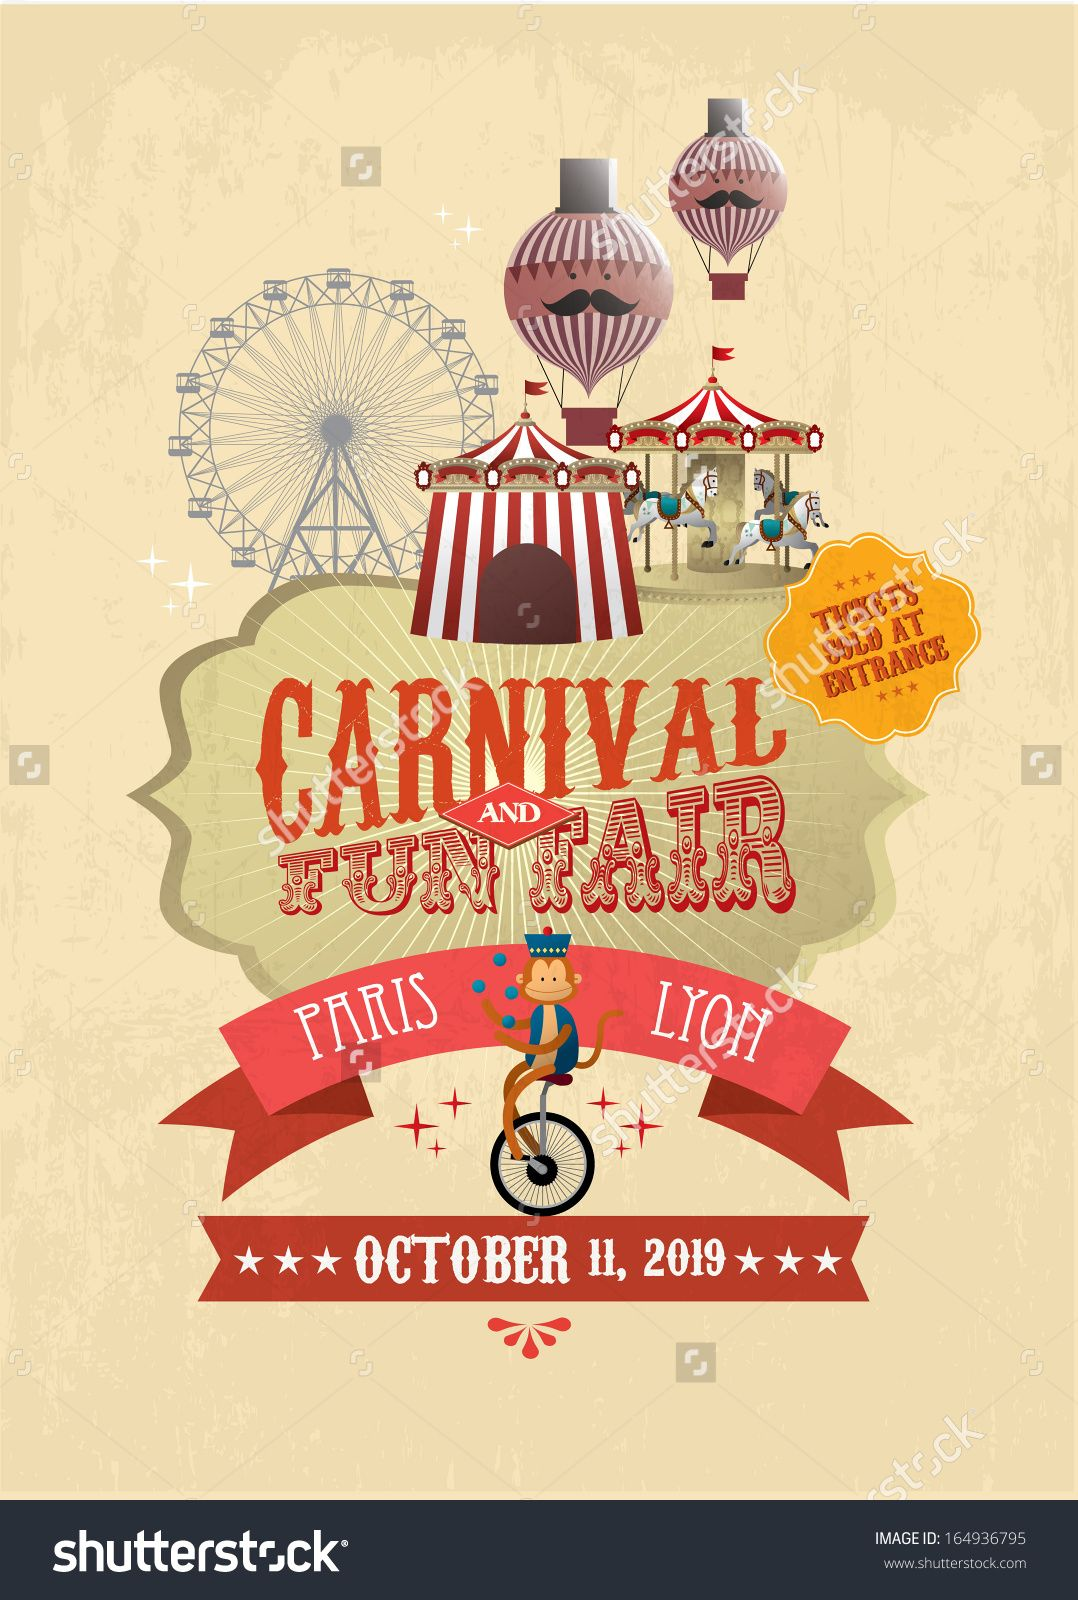 Vintage Carnival/fun Fair/ Fairground/circus Poster Template  Vector/illustration   Buy This Stock Vector On Shutterstock U0026 Find Other  Images.  Fun Poster Templates